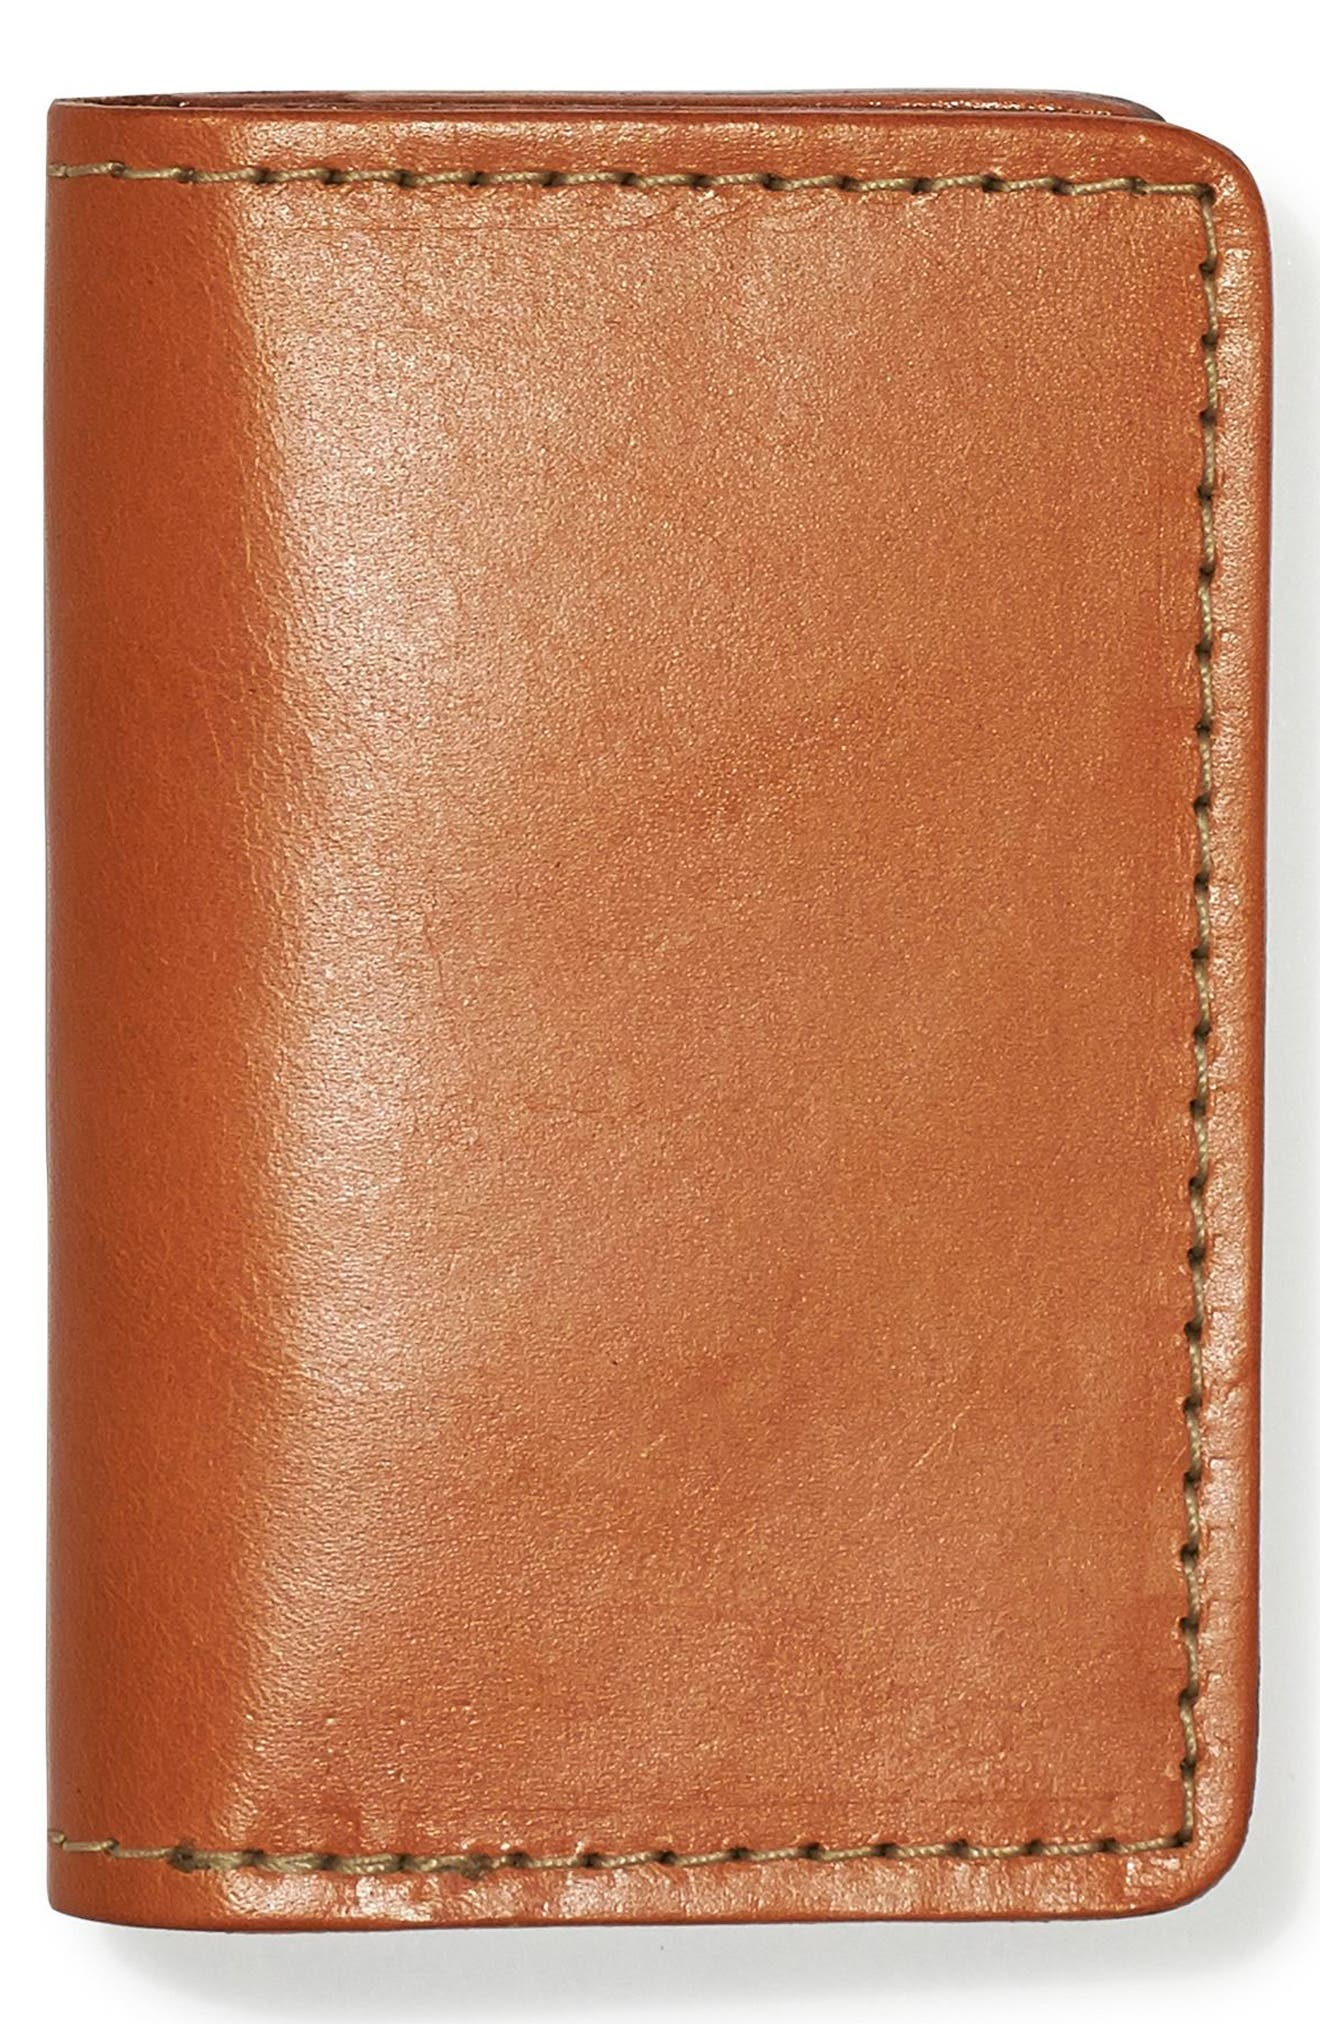 Alternate Image 1 Selected - Filson Leather Bifold Card Case